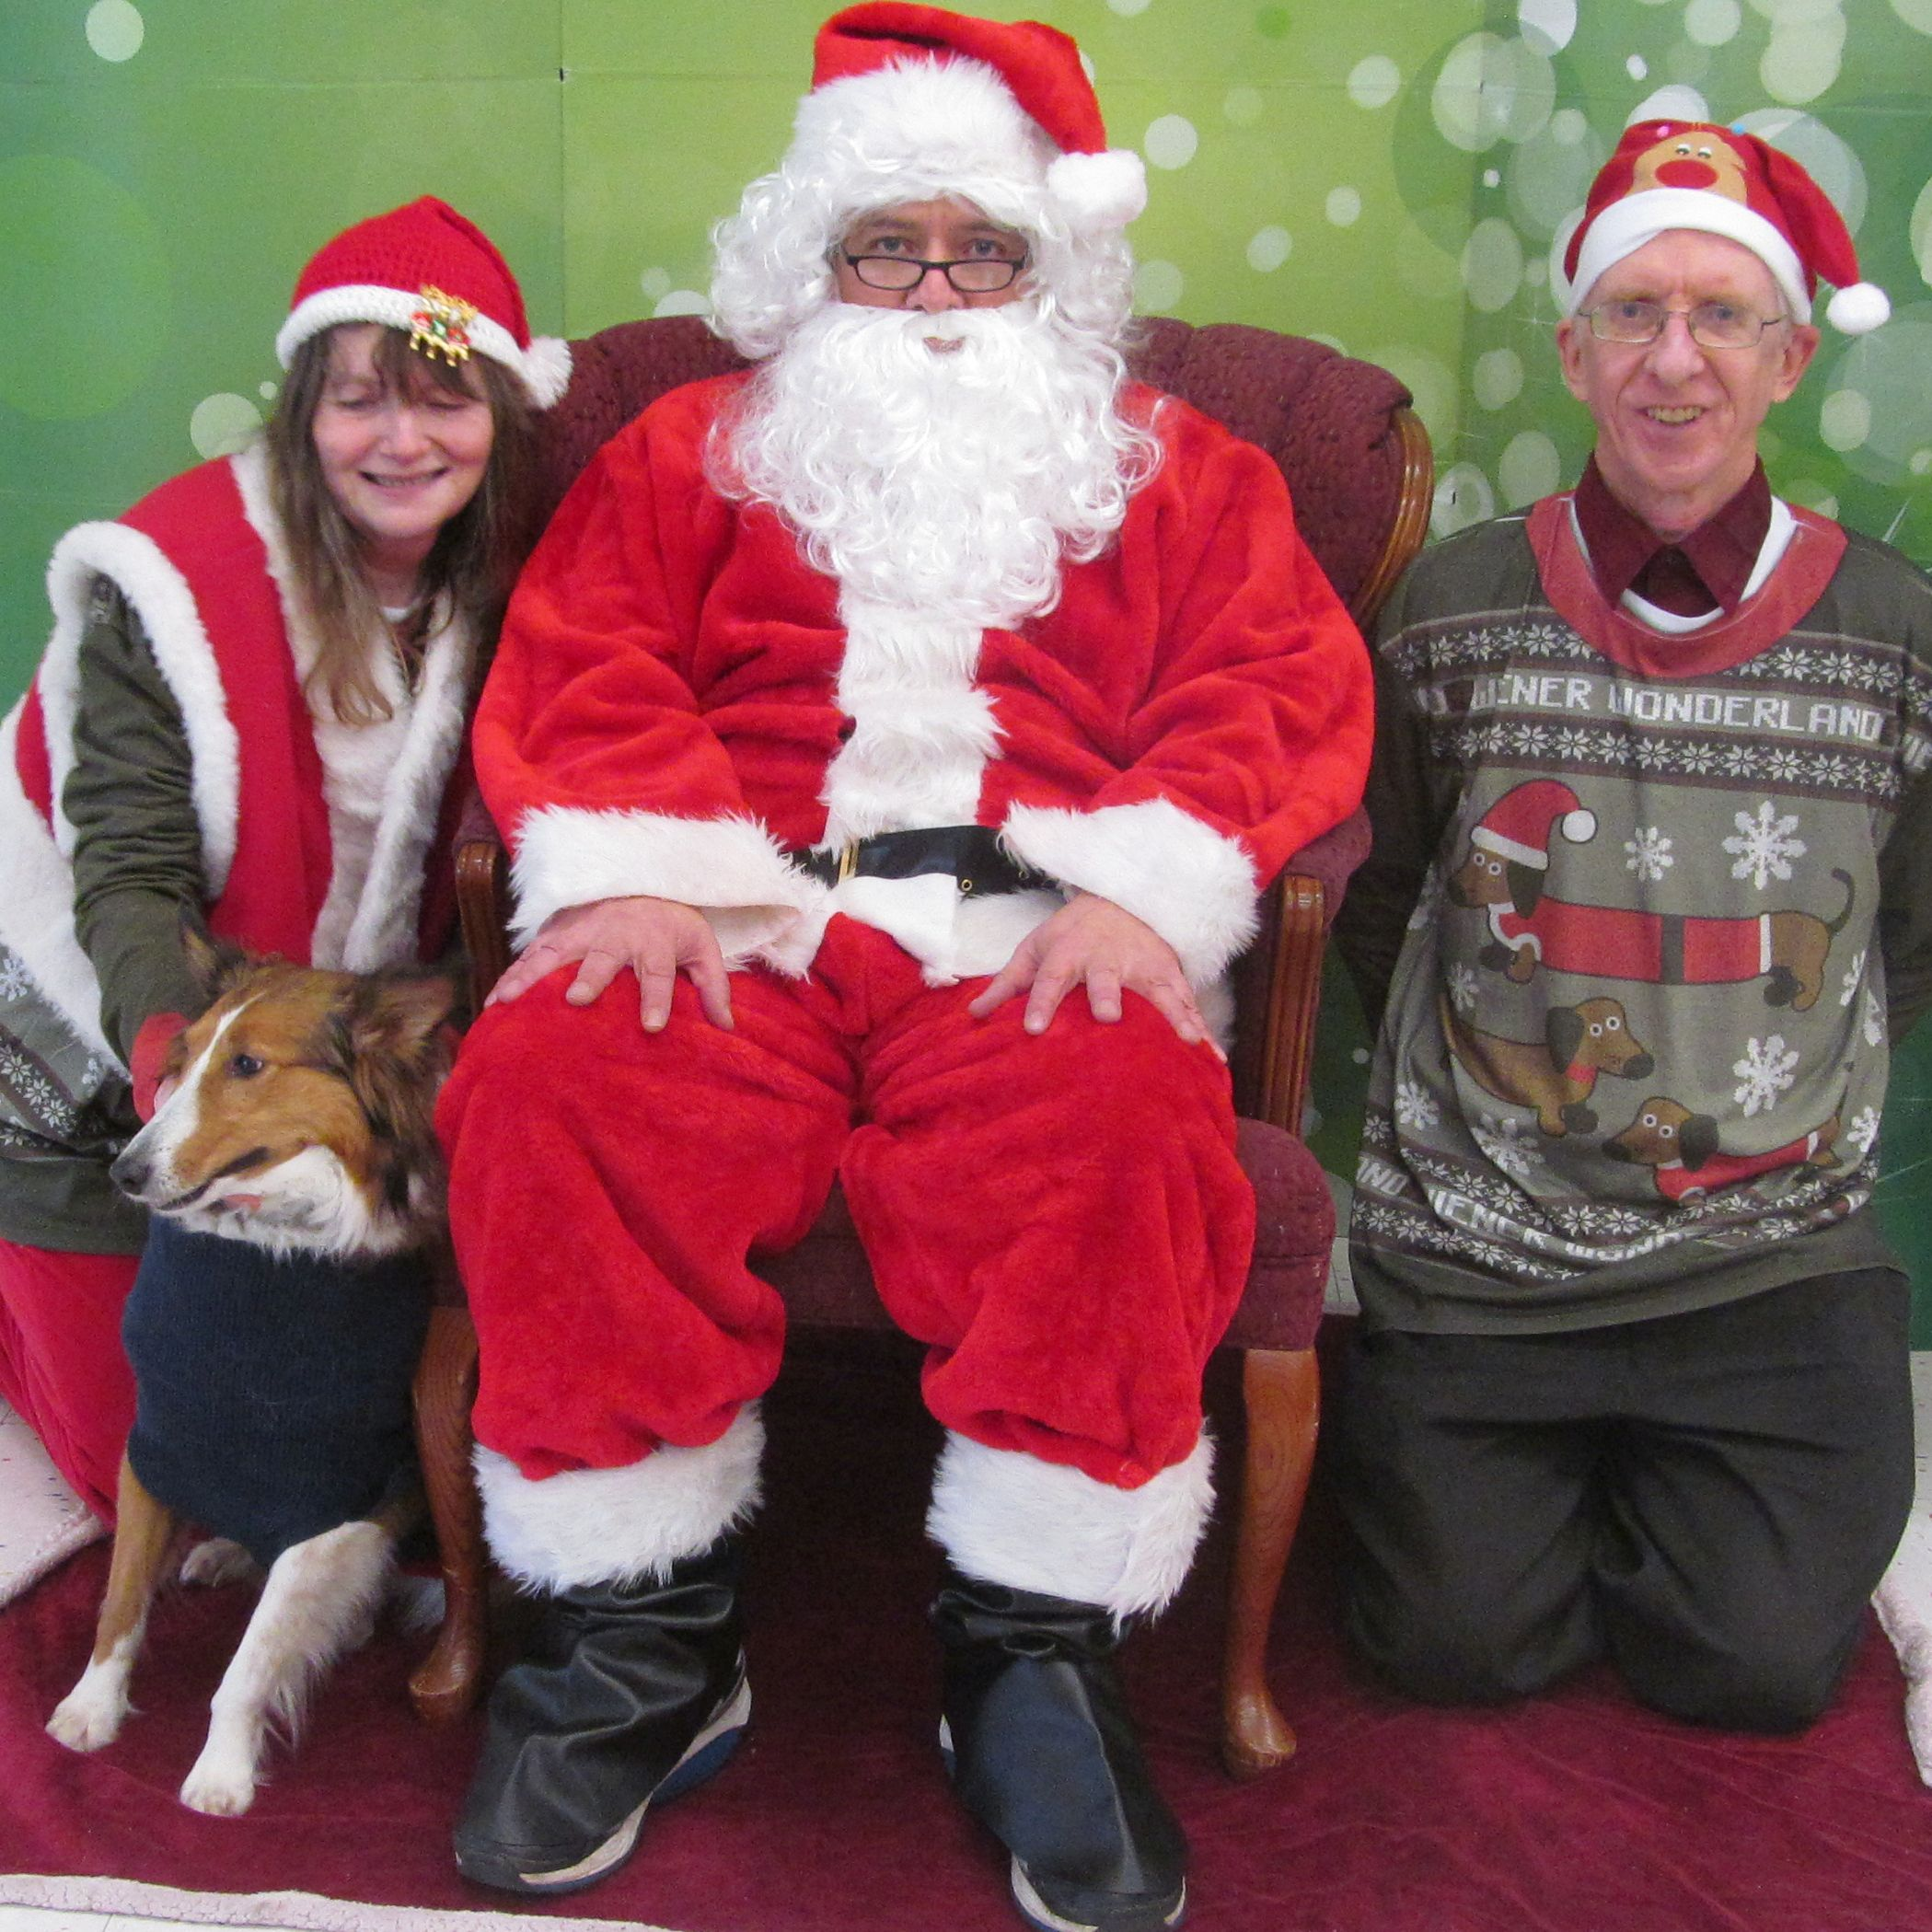 Ken and Sarah with the man in red